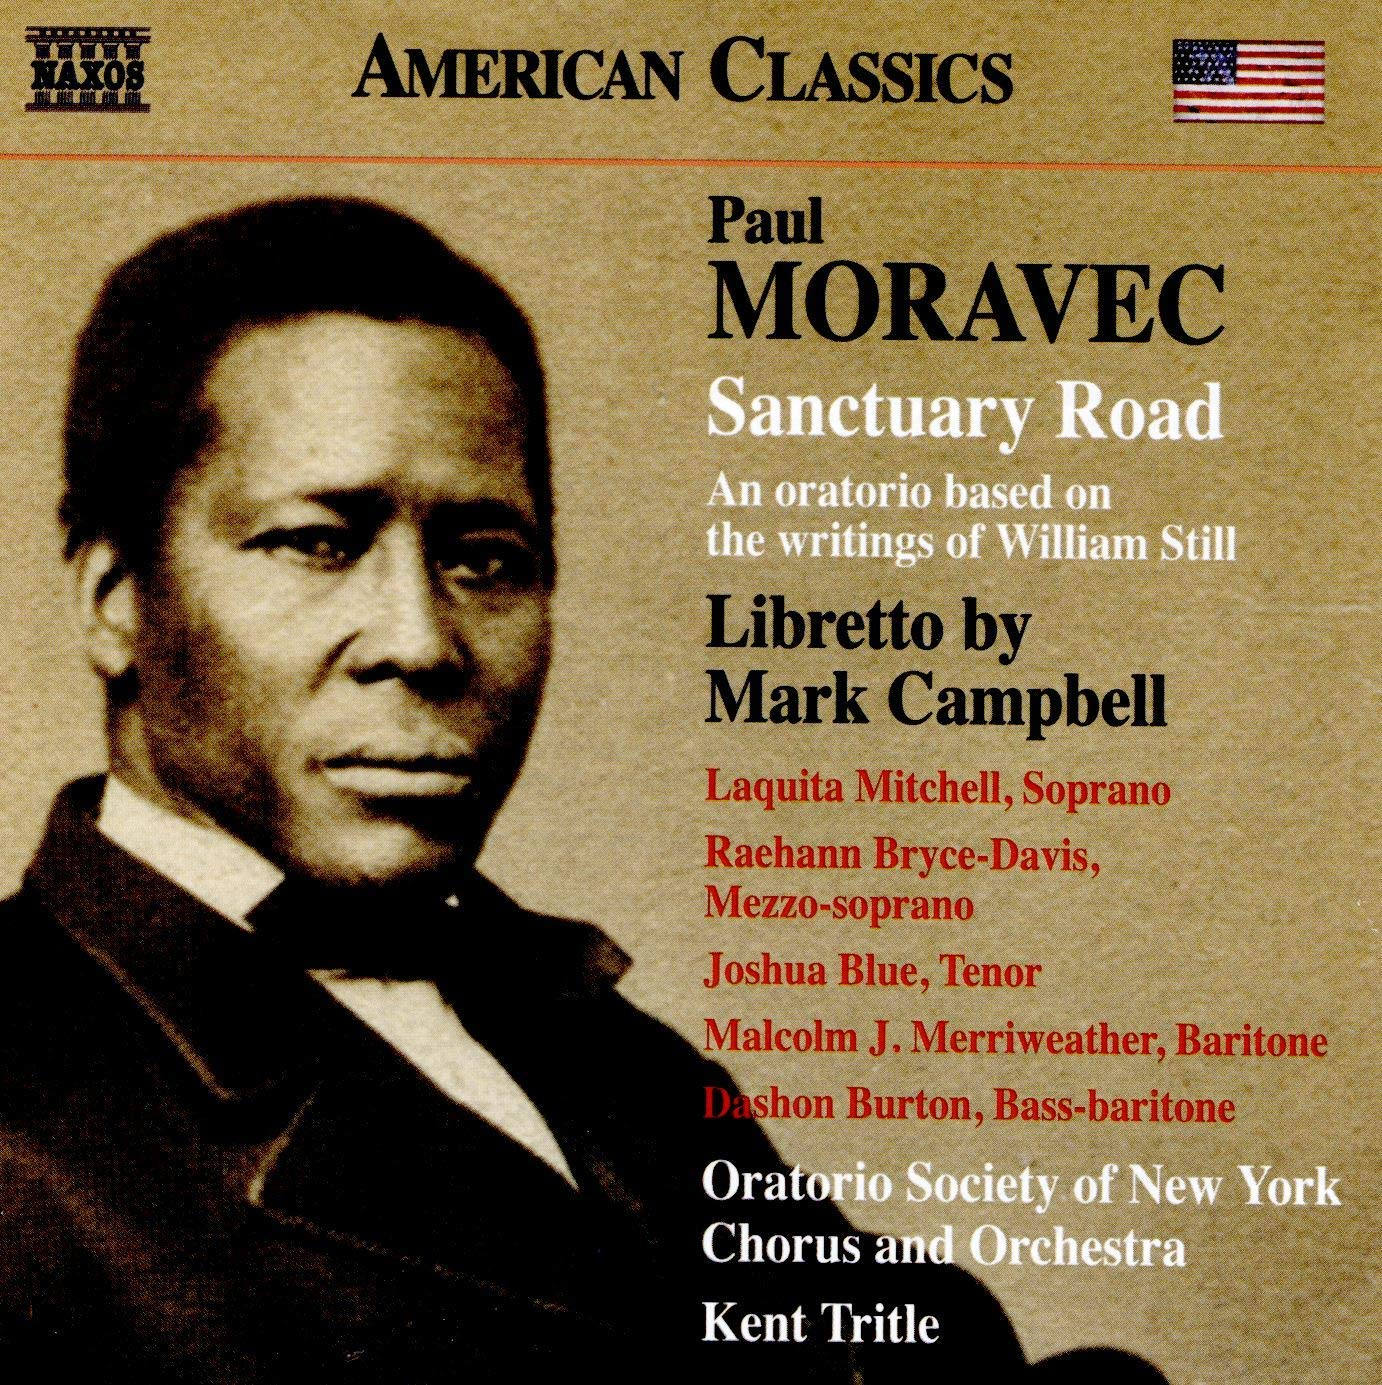 Review of MORAVEC Sanctuary Road